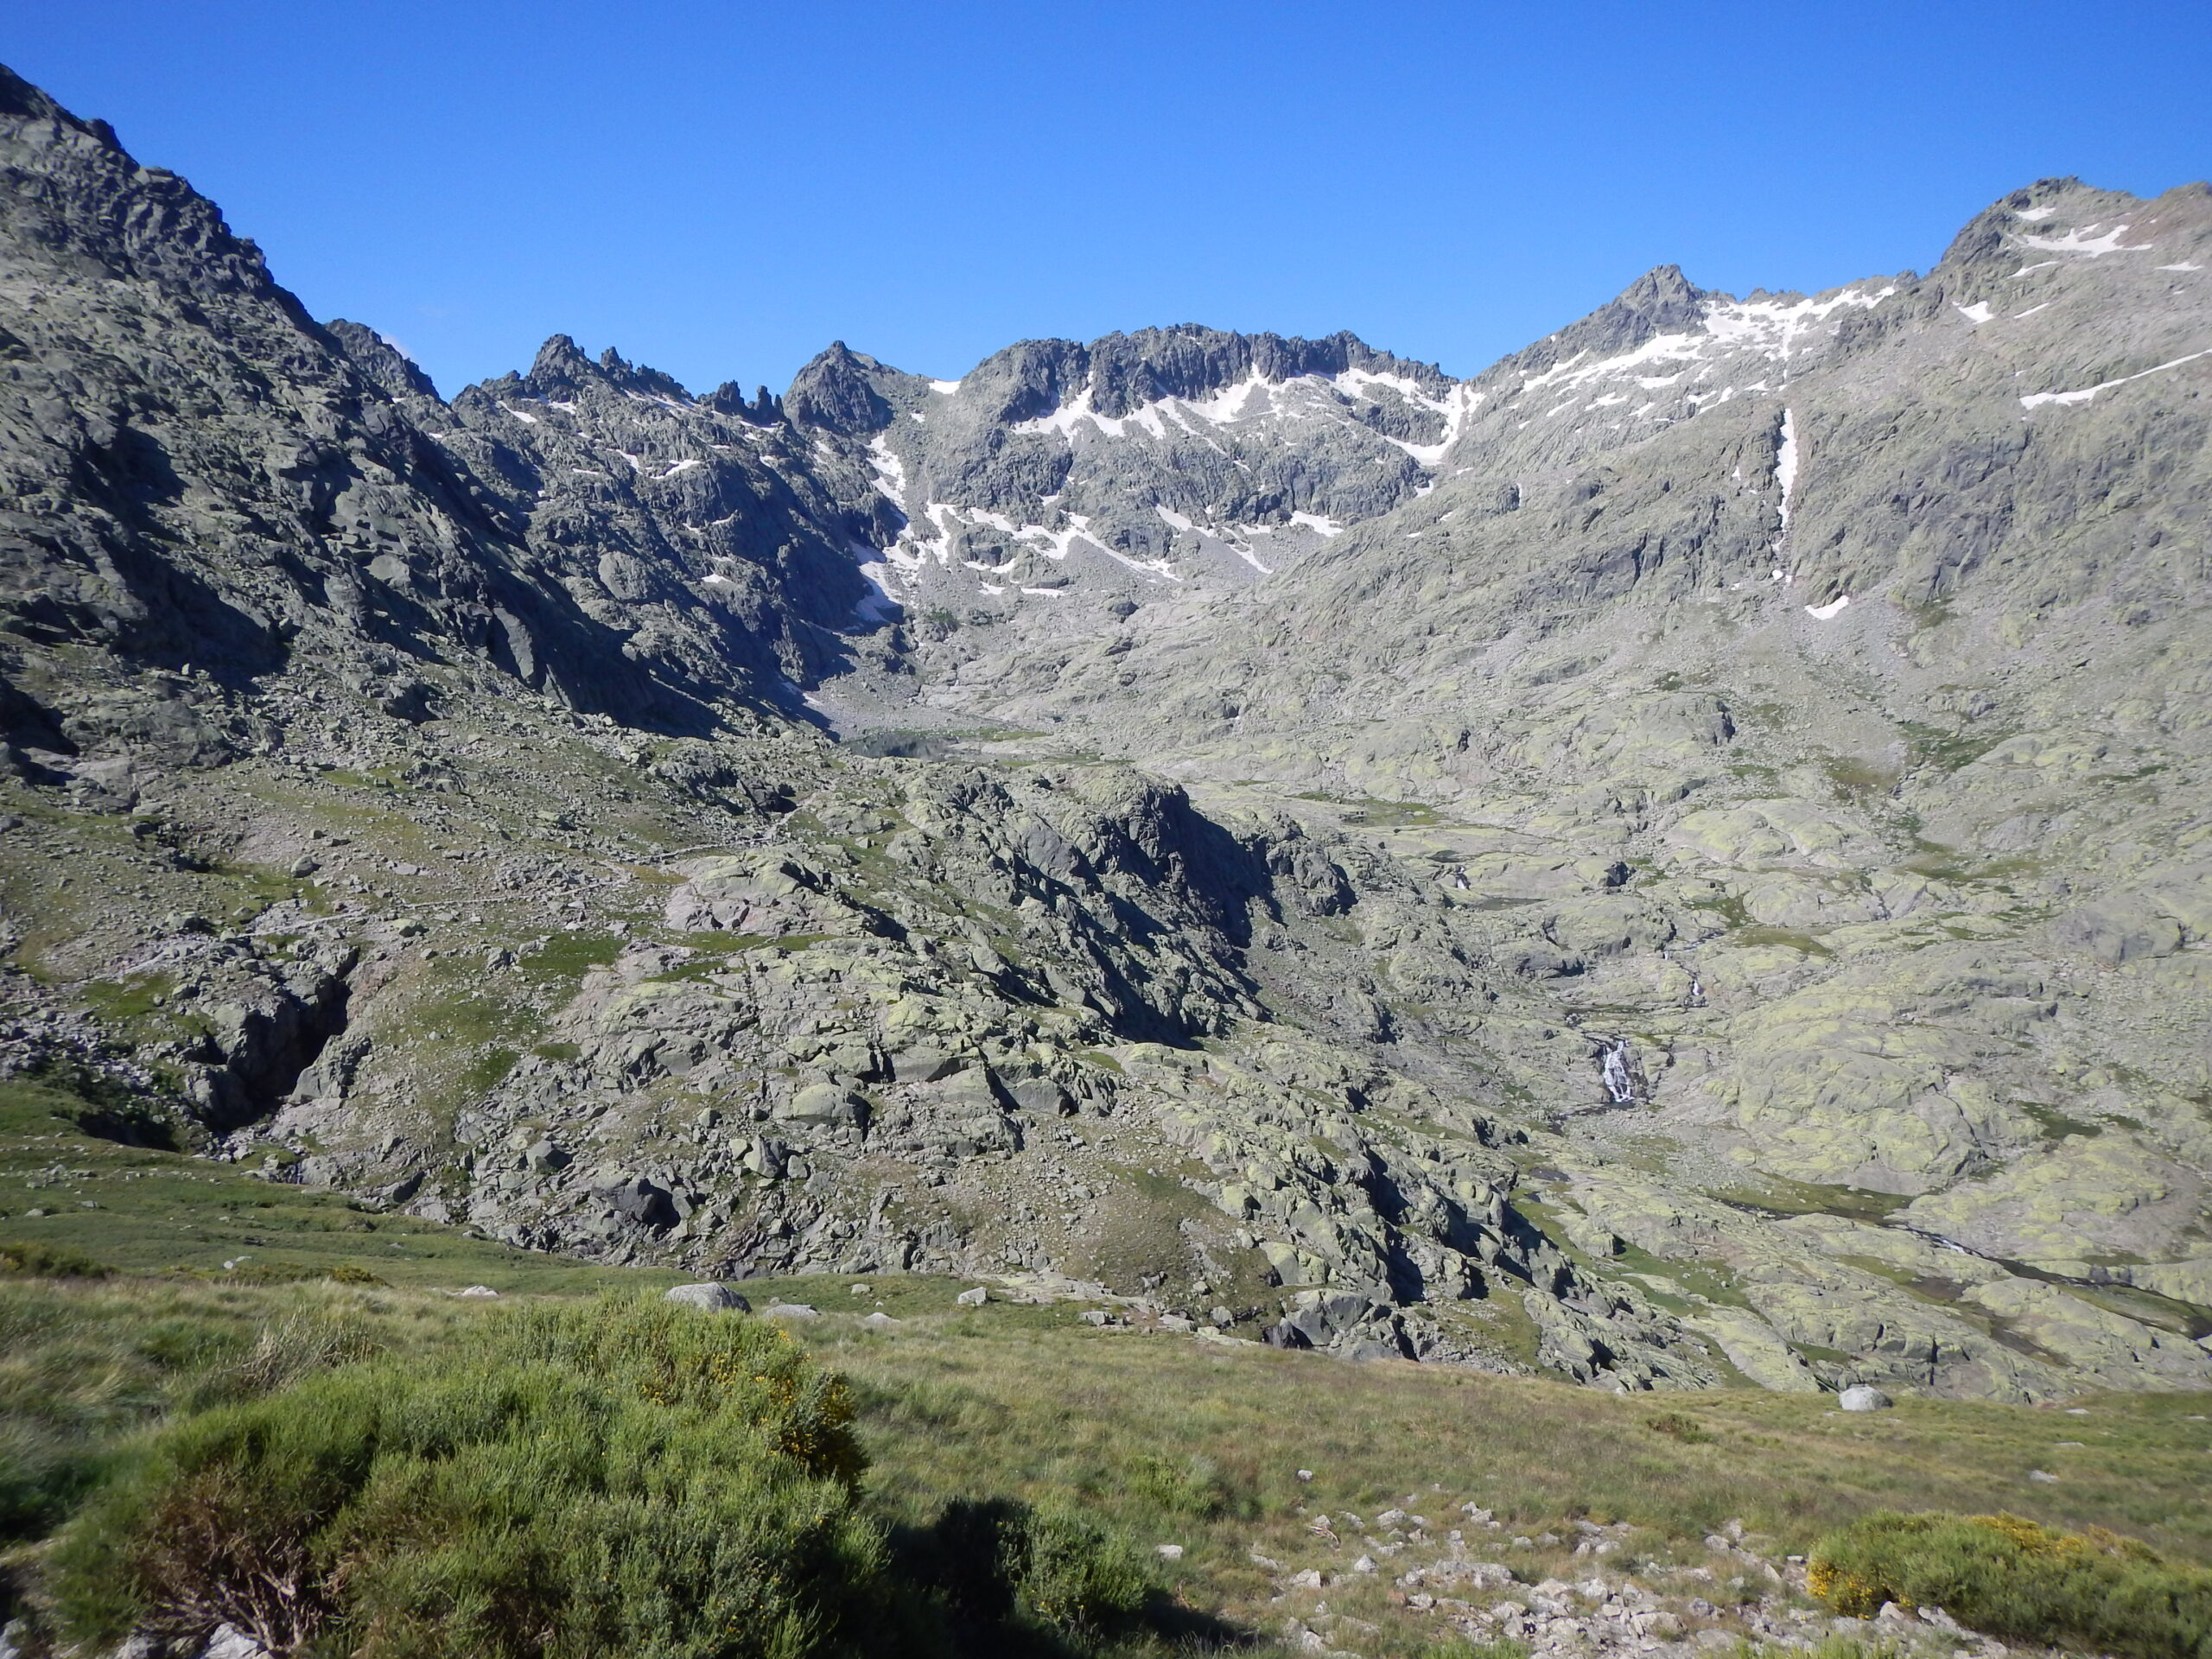 Discover Breathtaking High Summits In Our 2 Day Hike And Camp In Sierra De Gredos